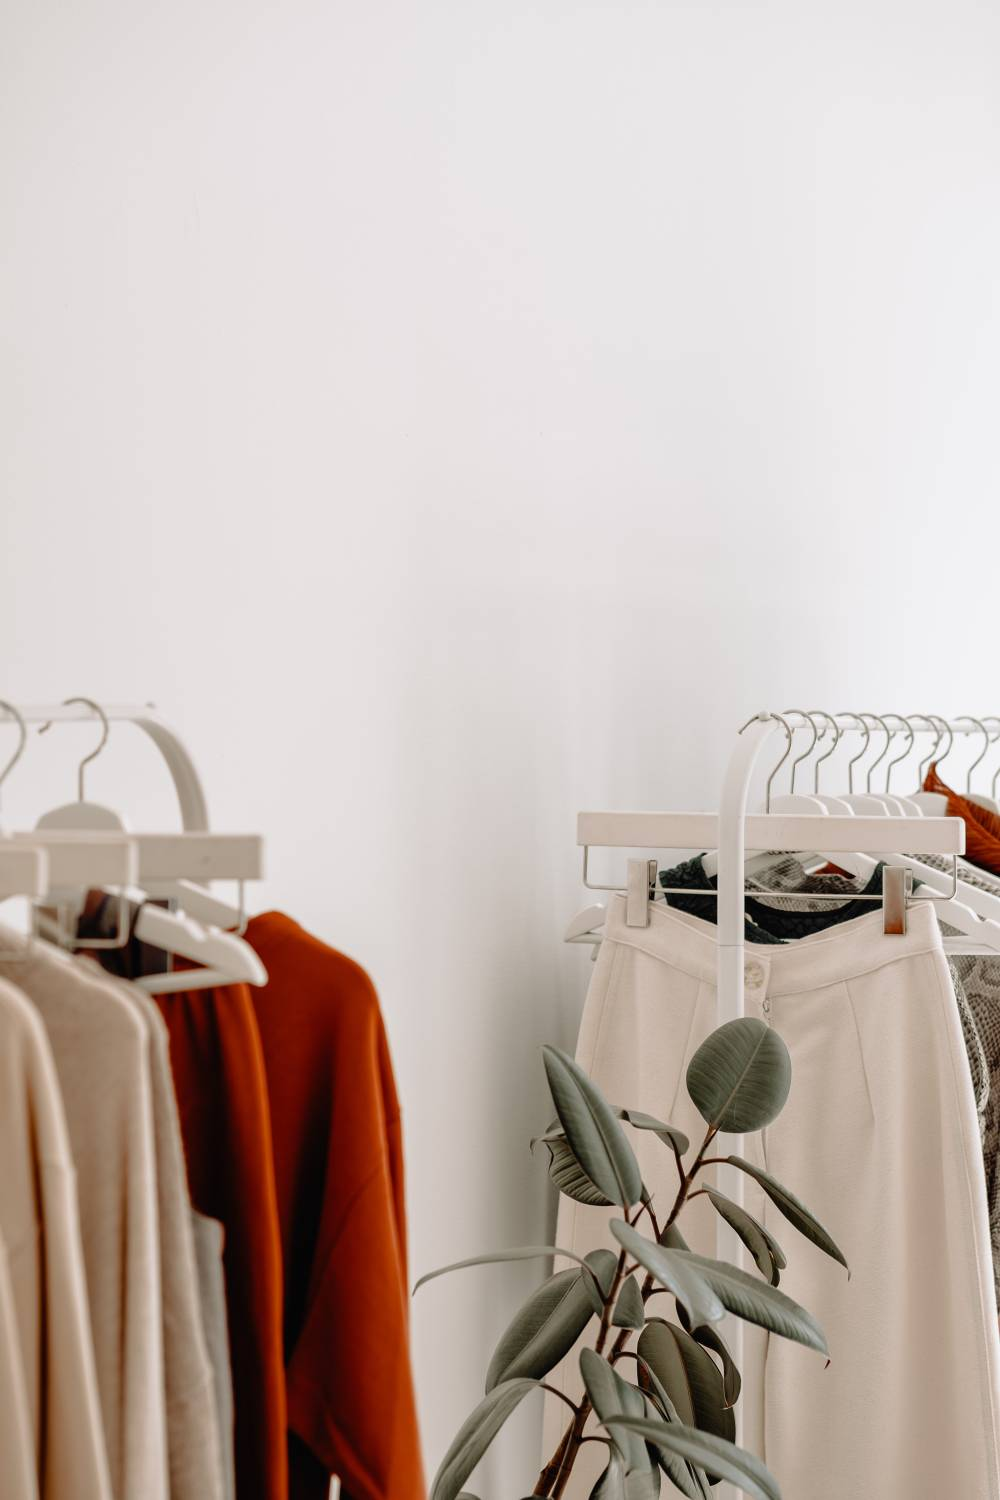 mindful consumption recycle old clothes